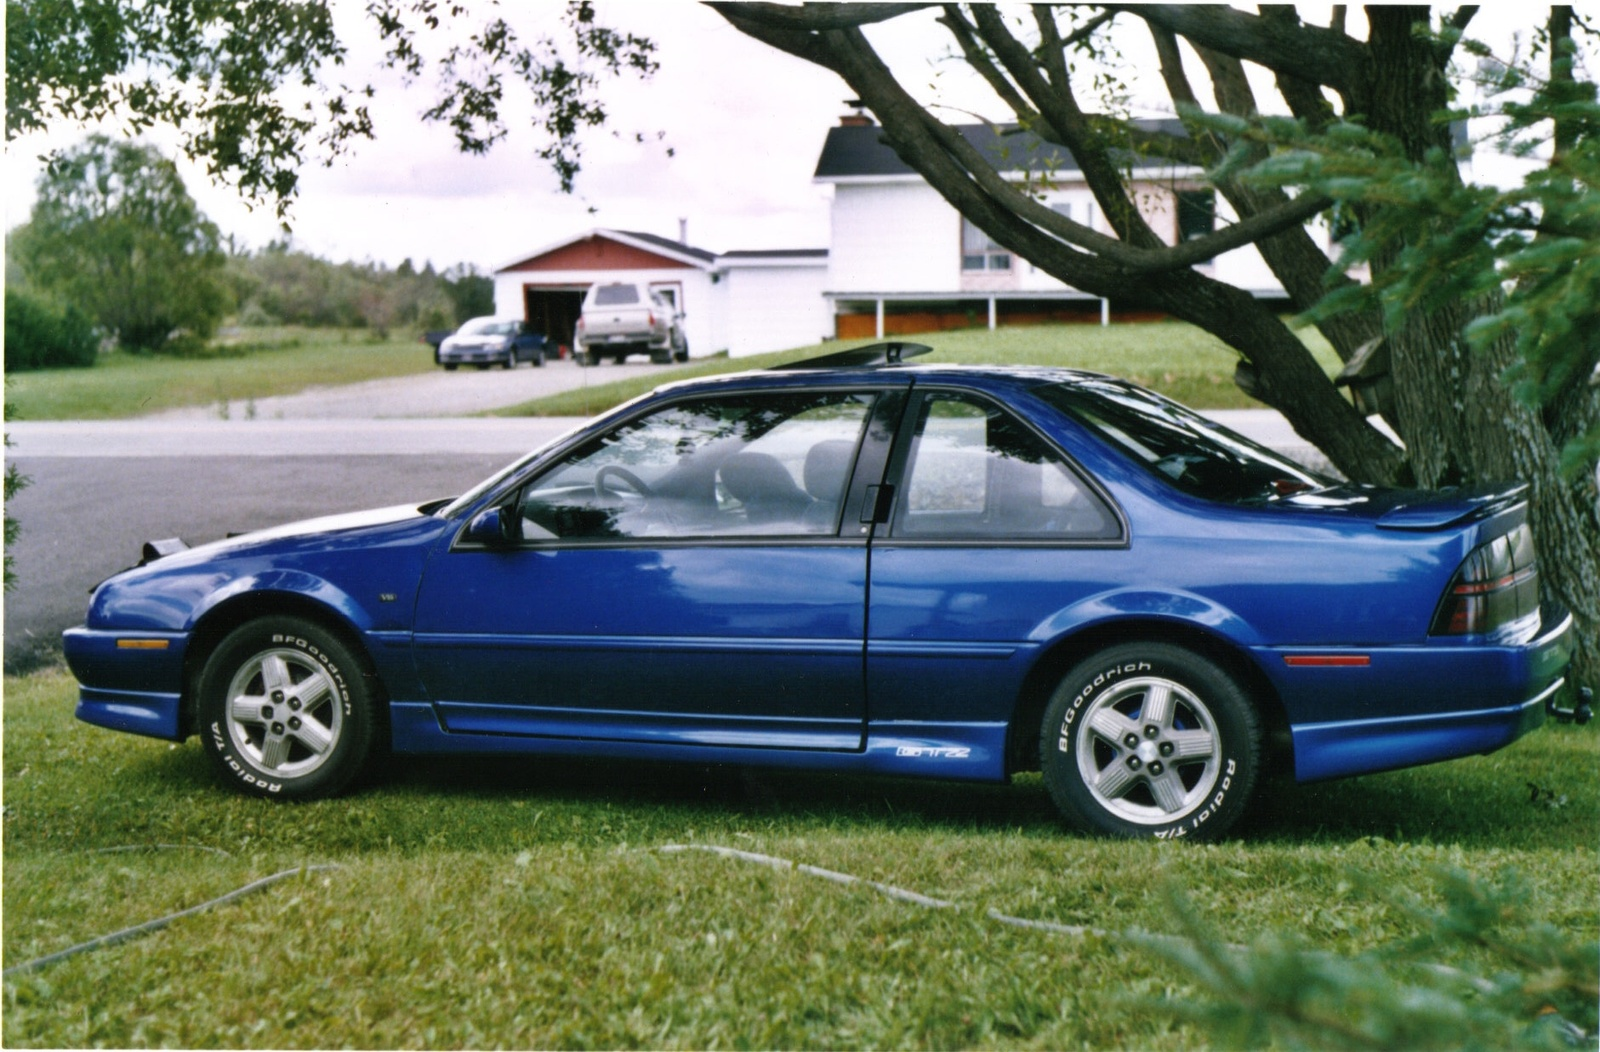 Chevrolet Beretta 1988 Photo - 1